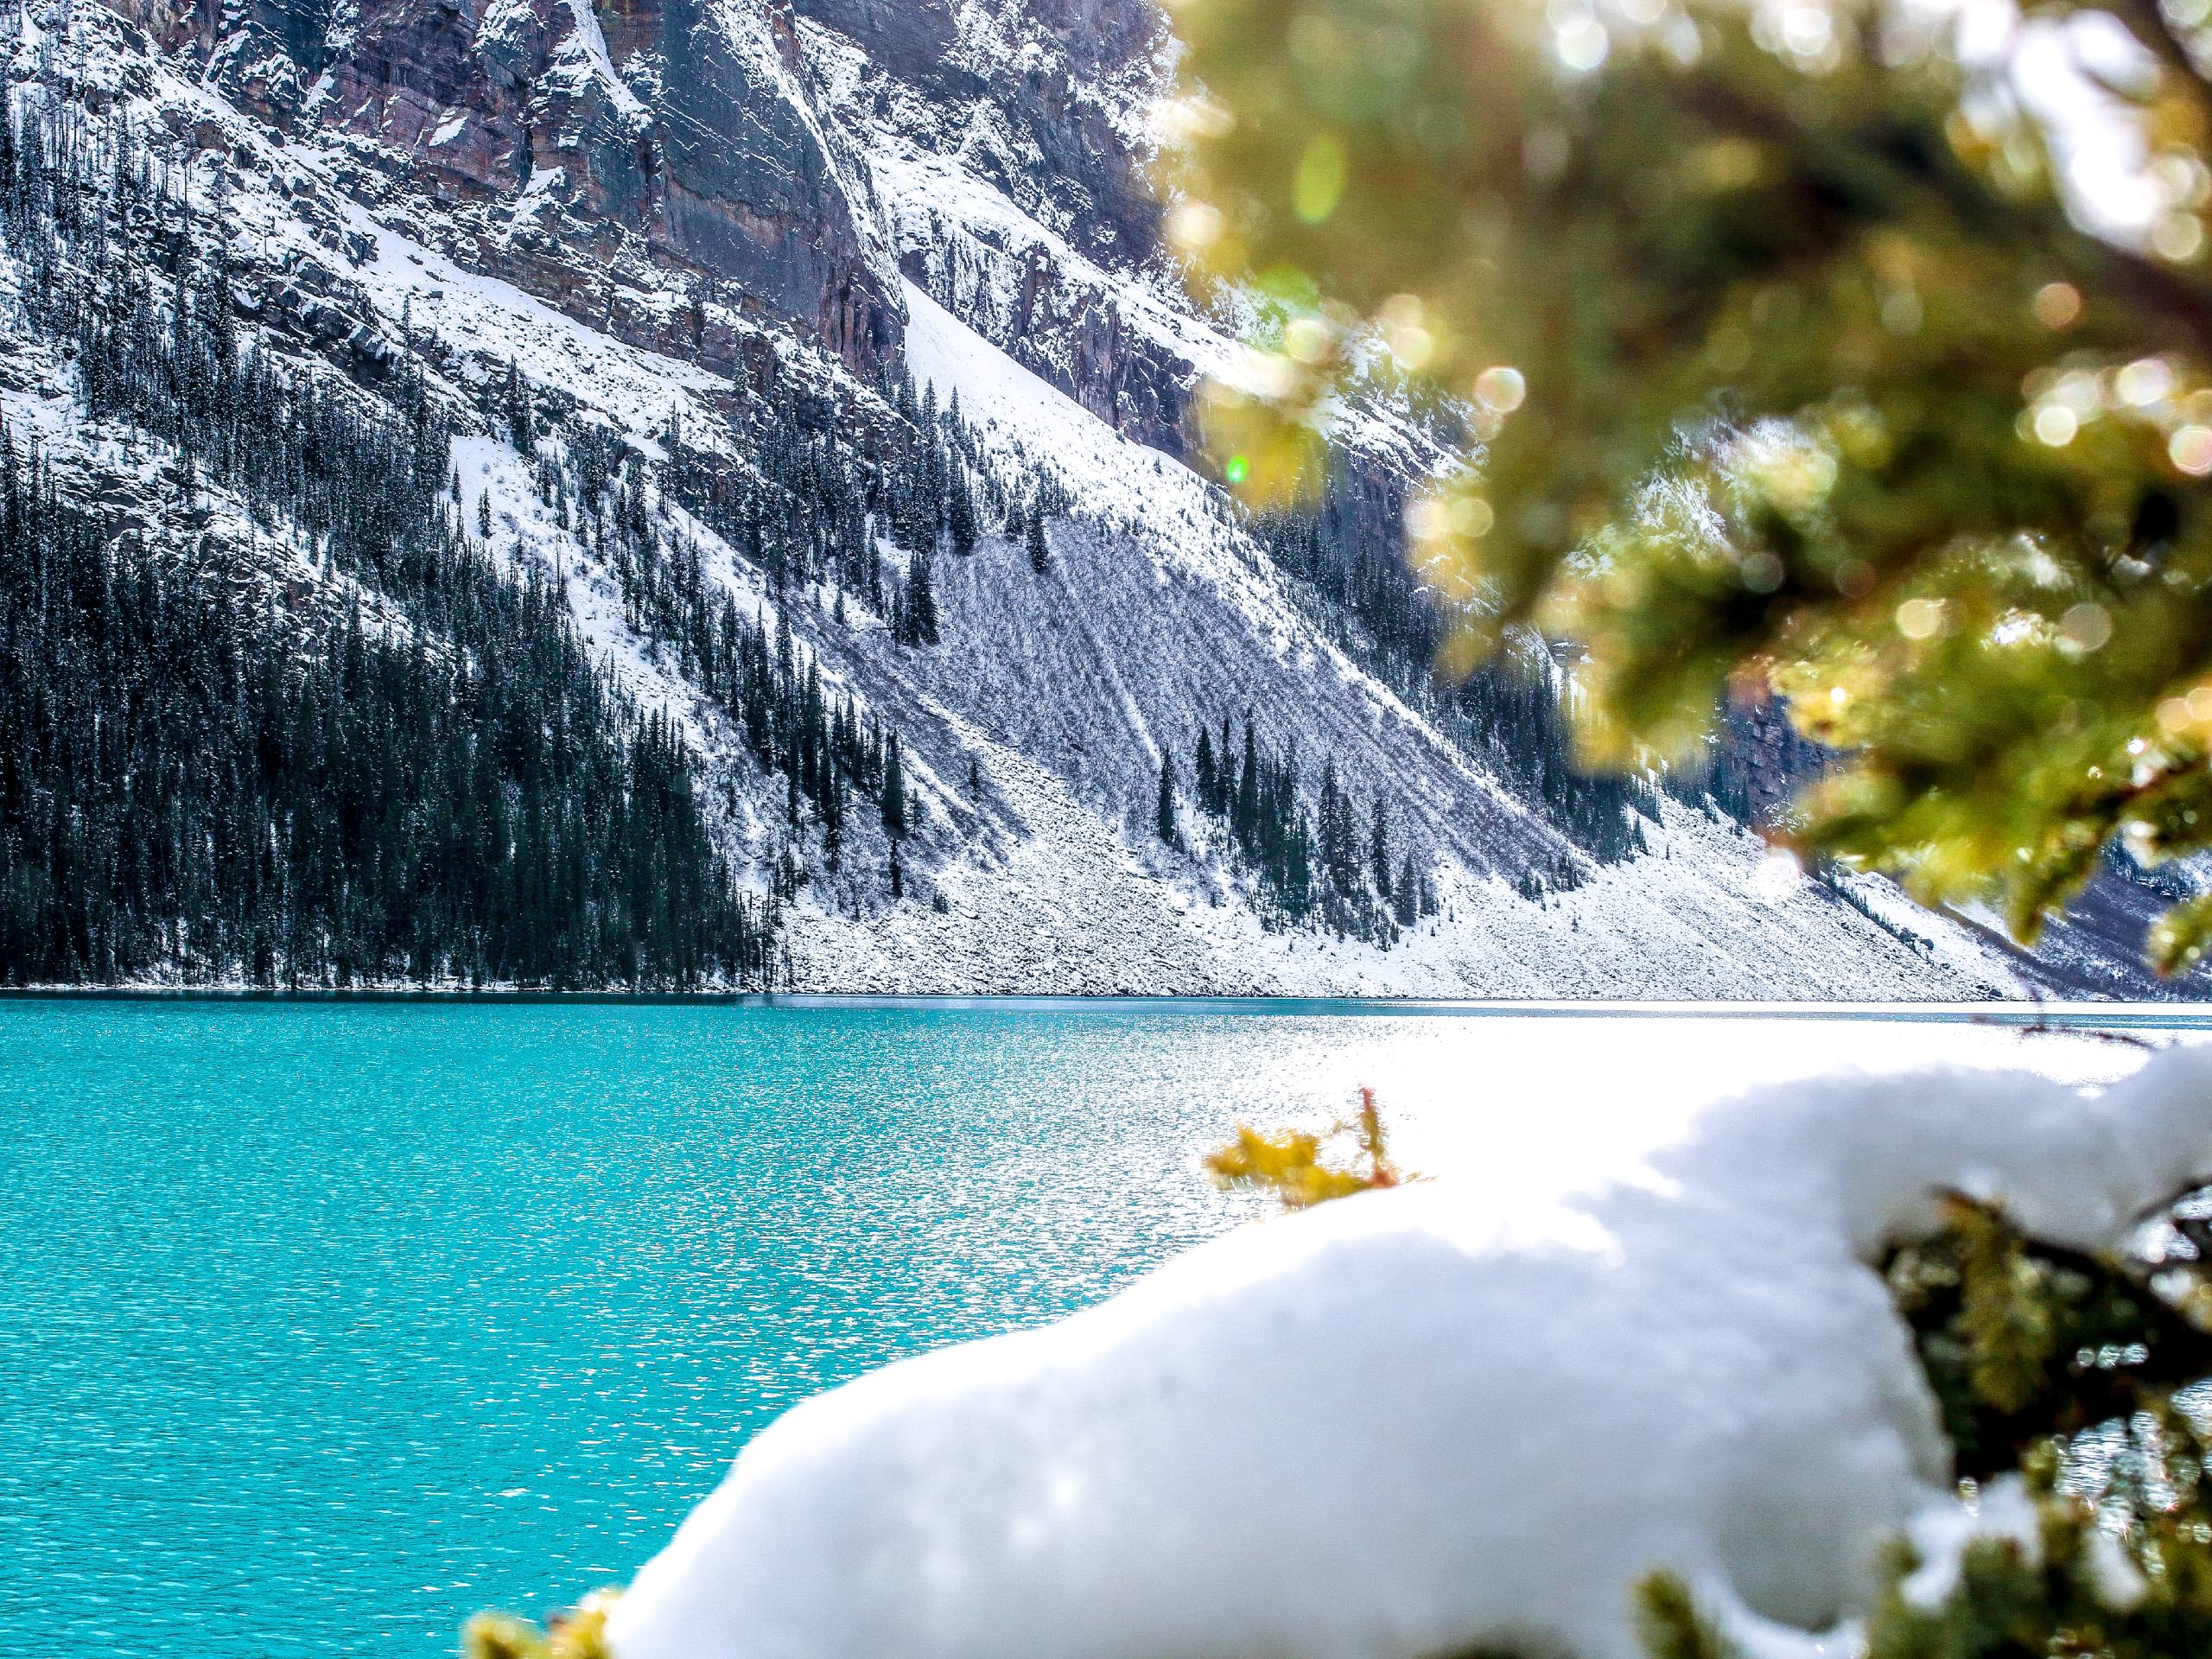 Turquoise lake in Banff National Park